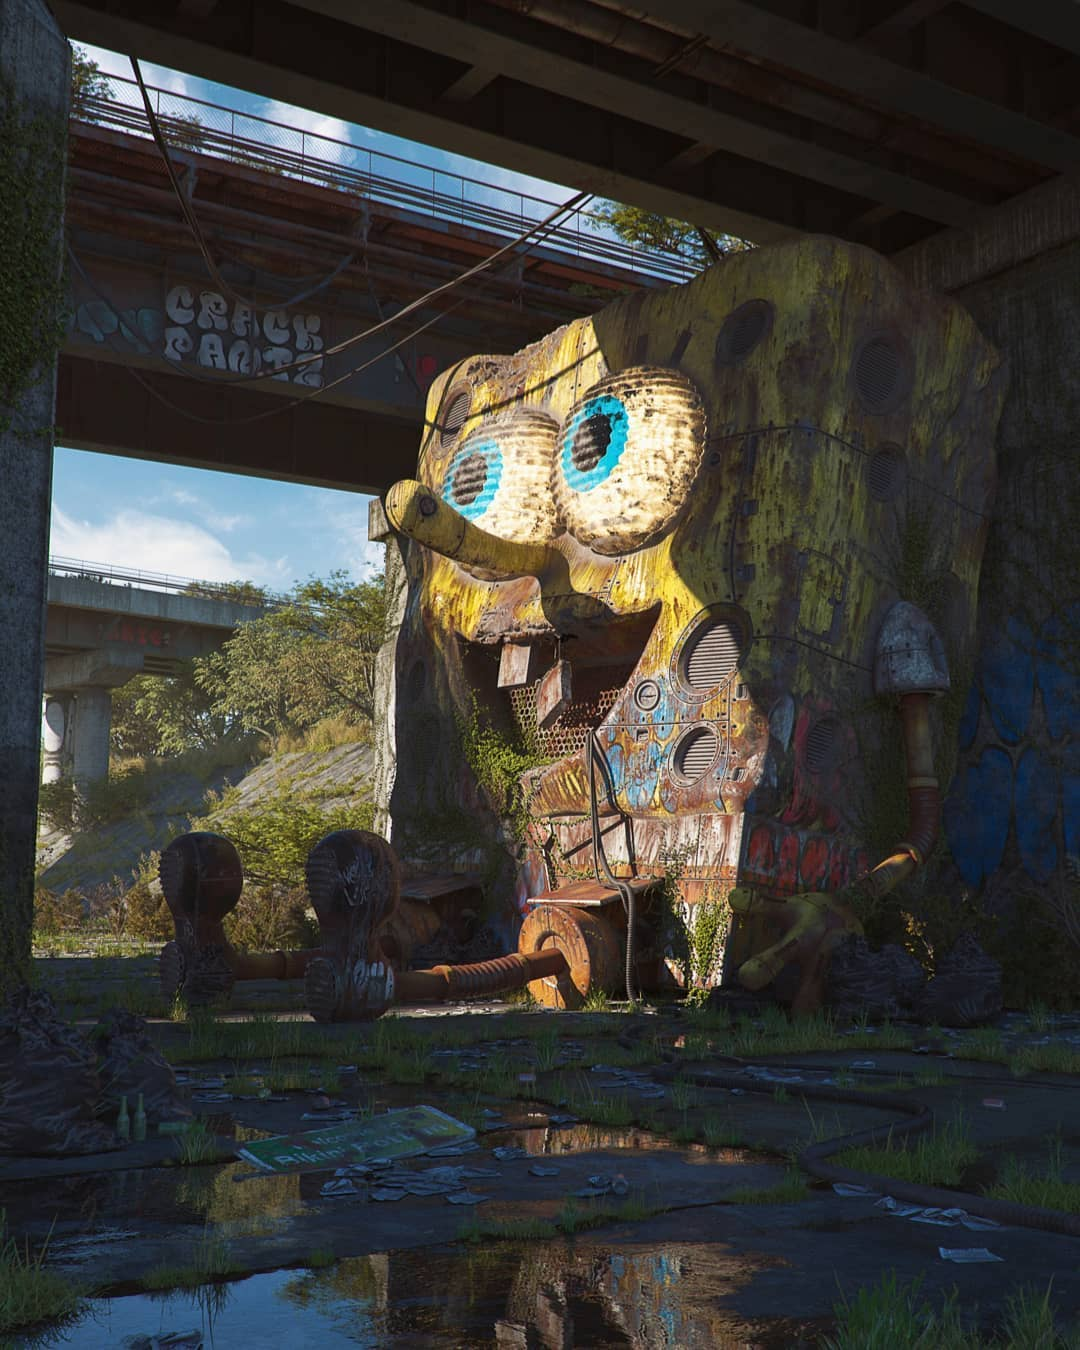 Pop Culture Dystopia Digital Art by Filip Hodas